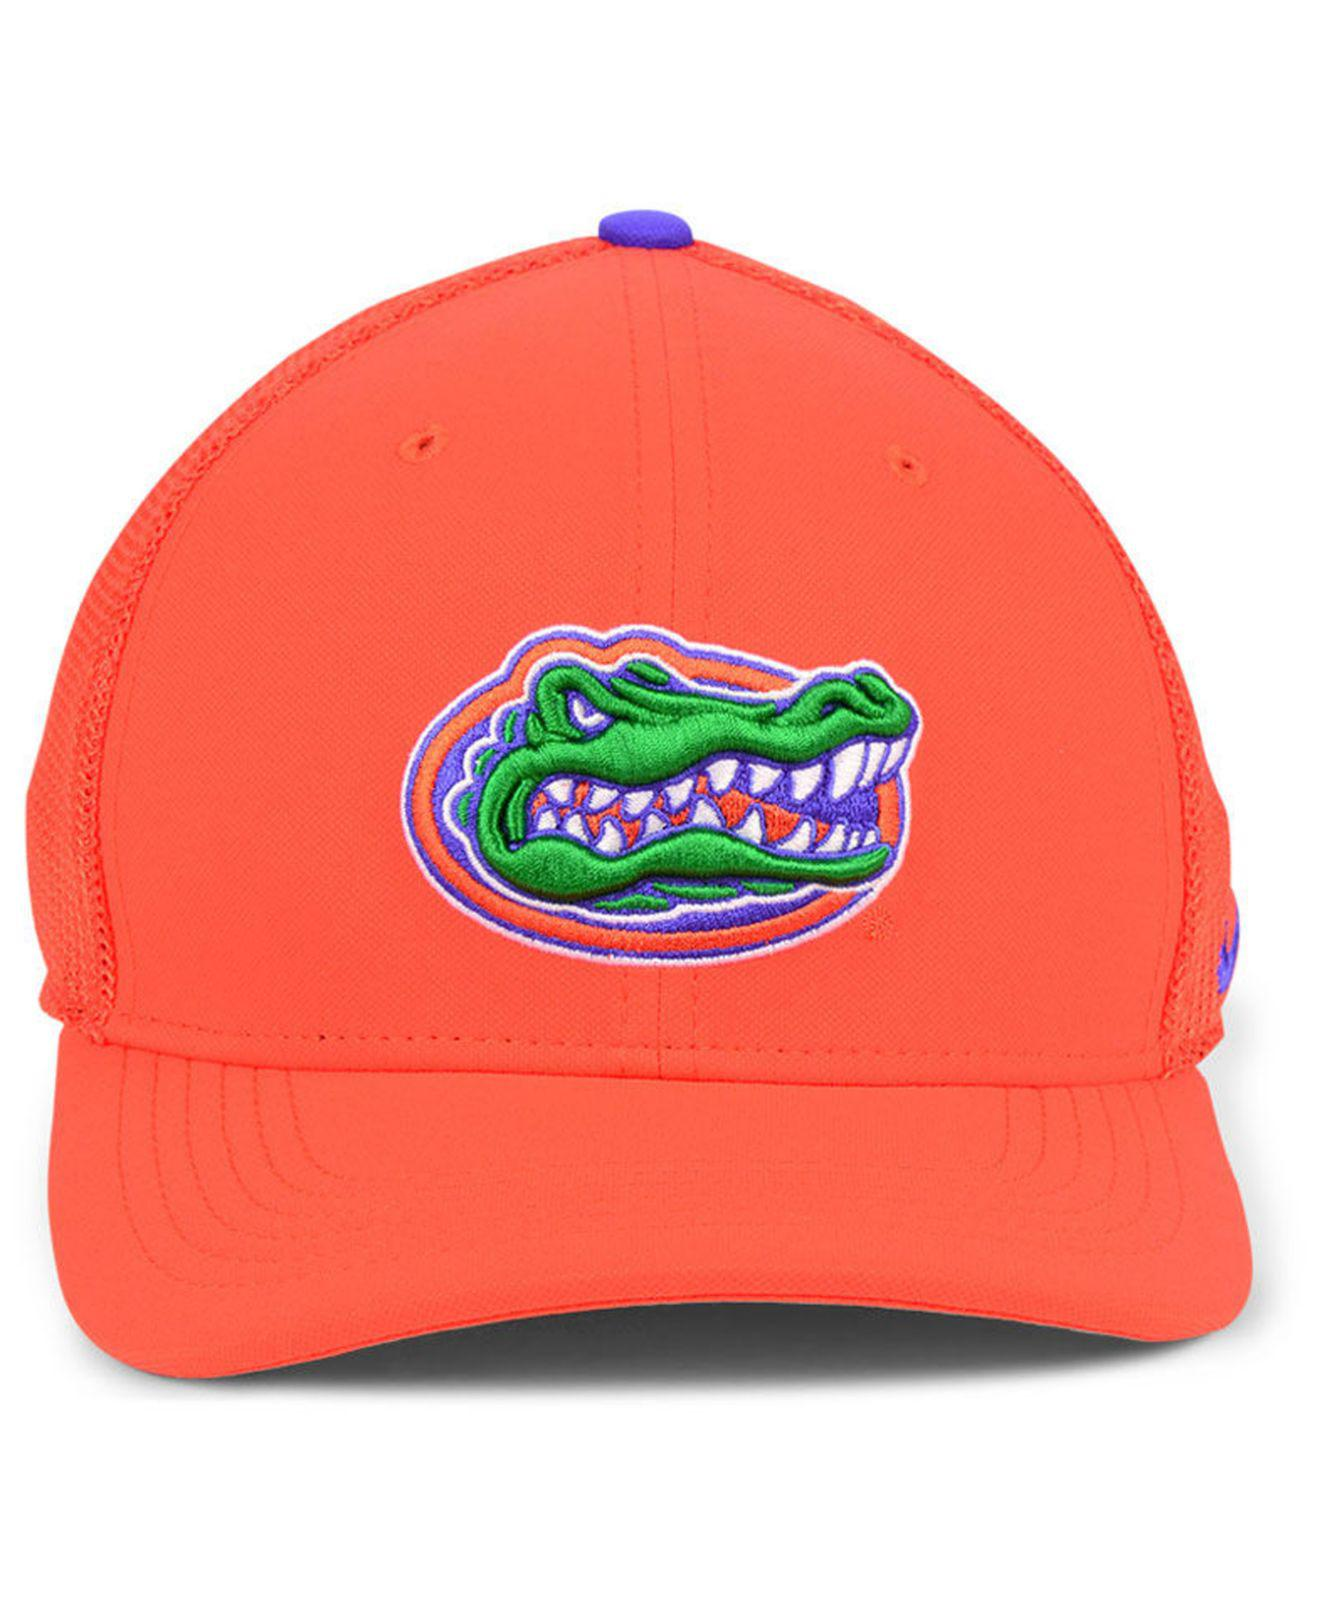 new product c3074 fb9da ... discount lyst nike florida gators col aro swooshflex cap in orange for  men 4ce28 785ff